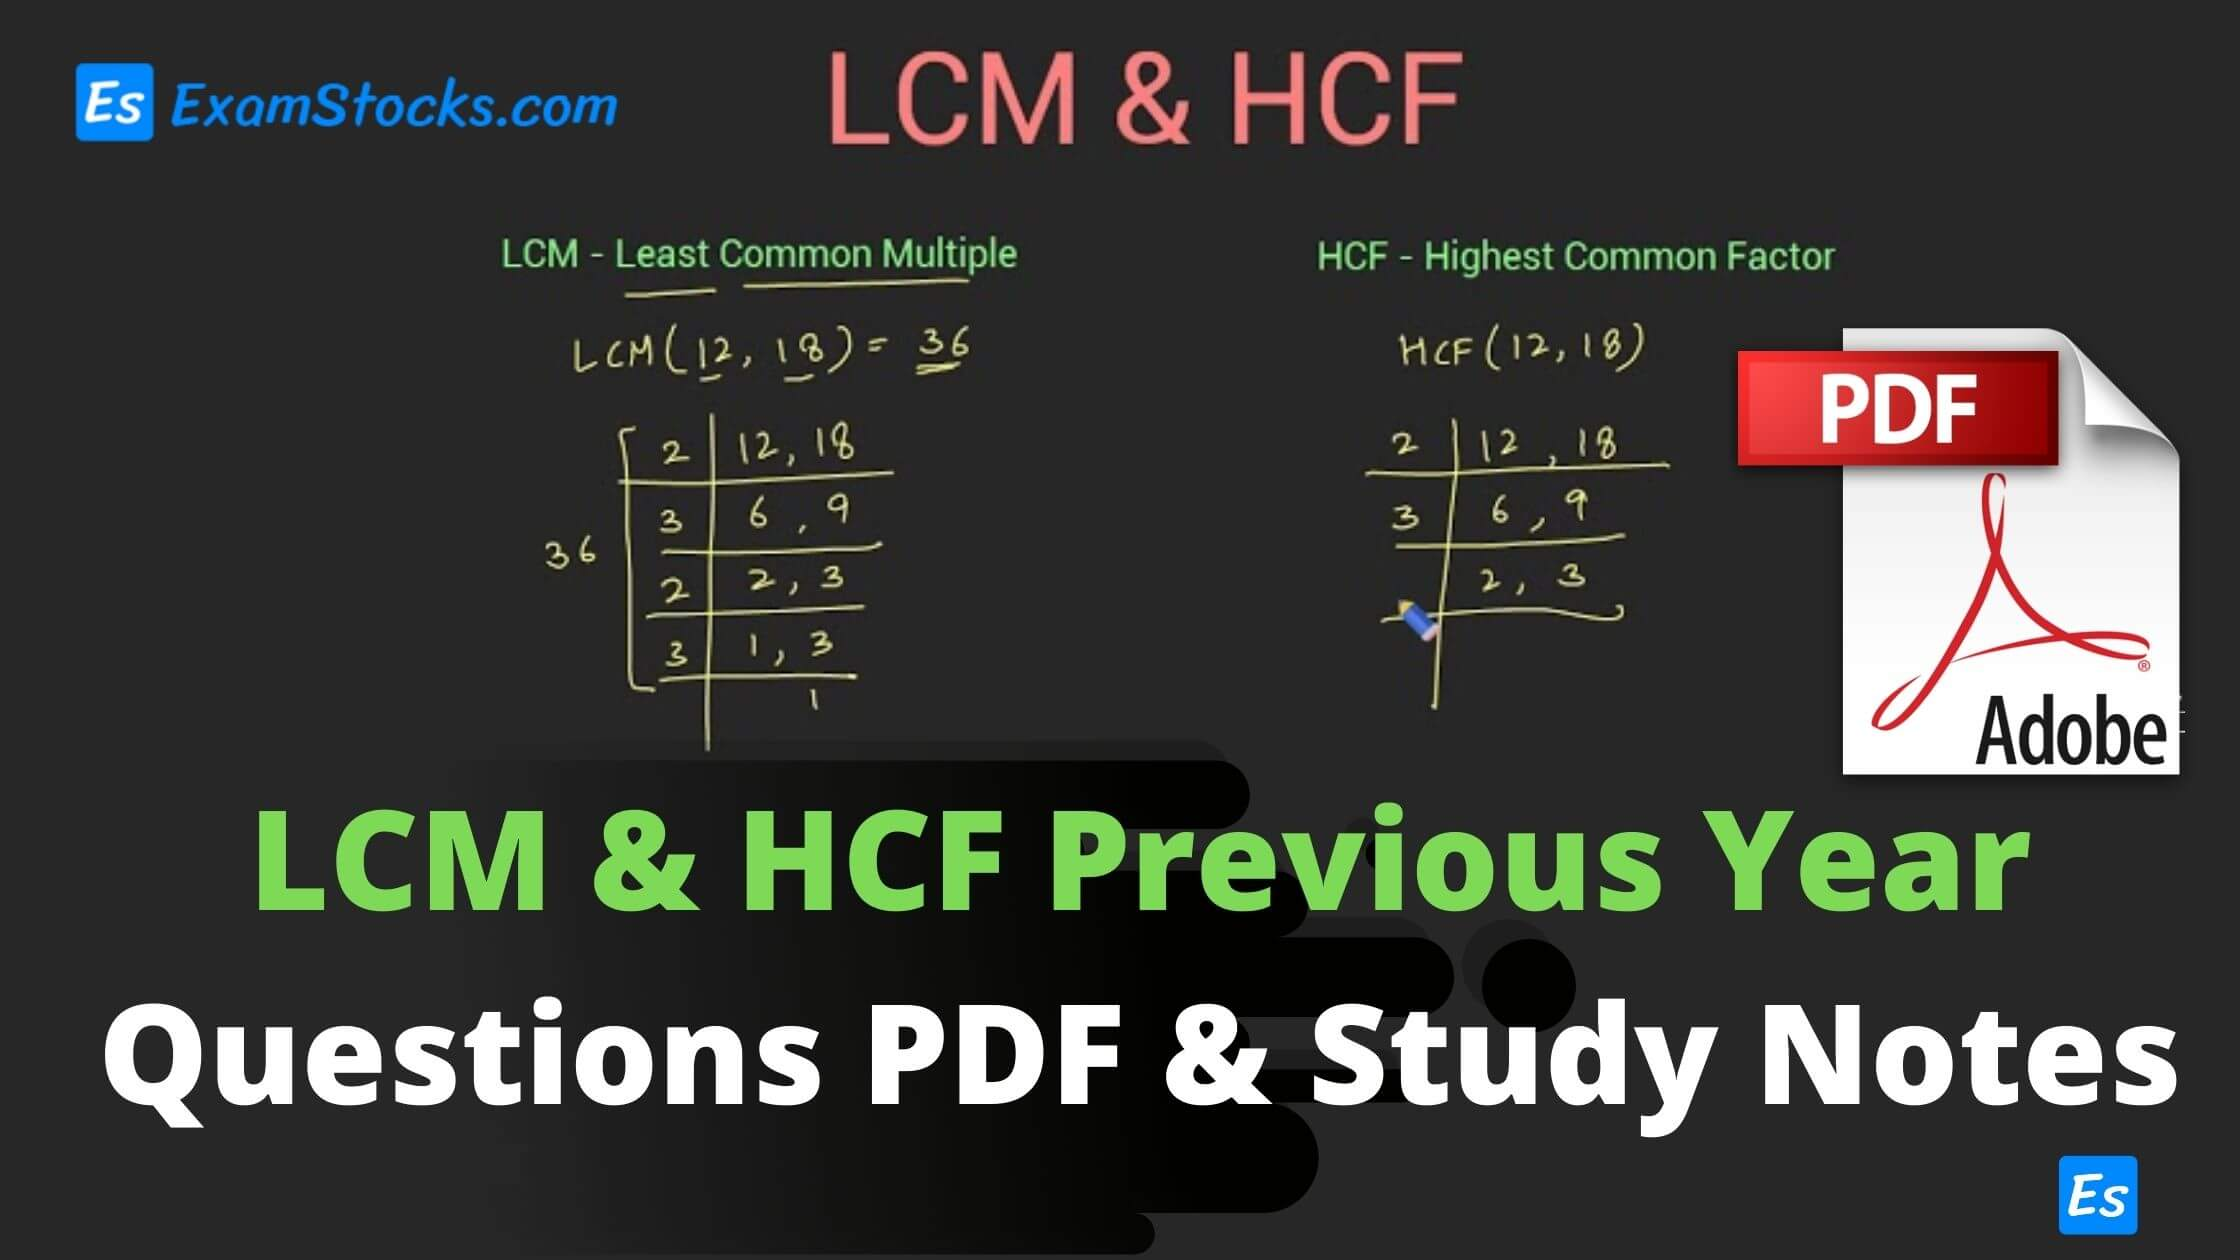 LCM & HCF Previous Year Questions PDF & Study Notes